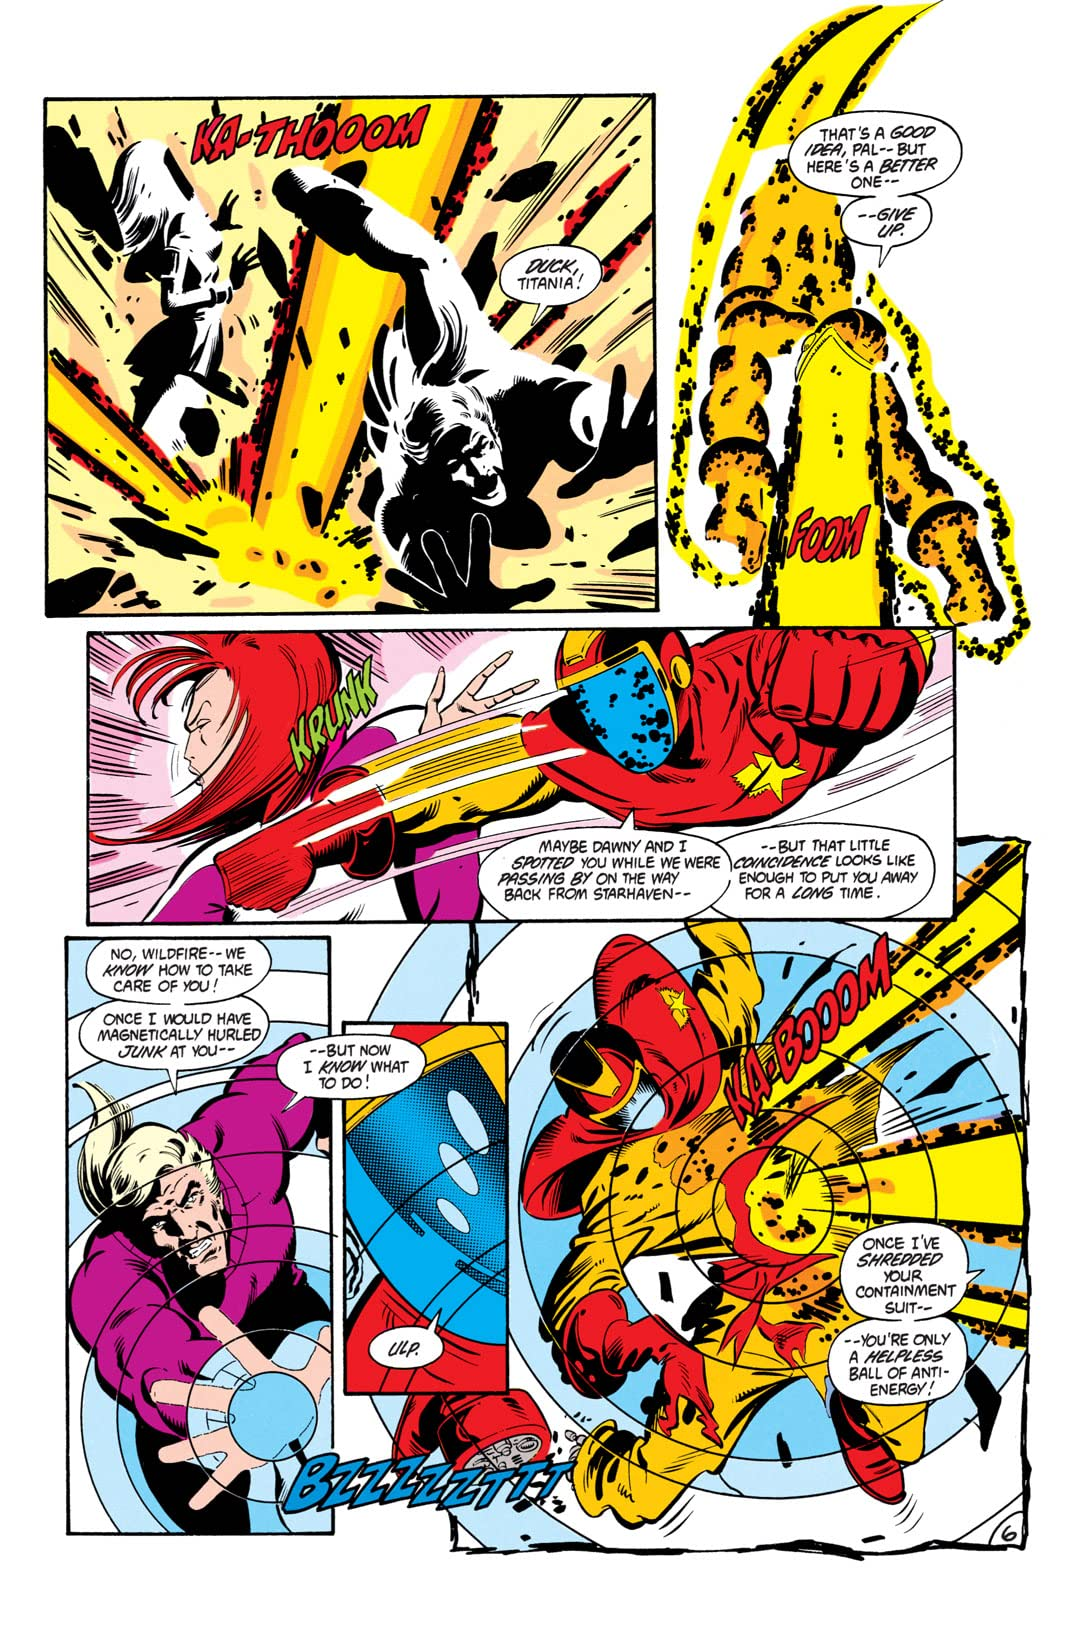 Legion of Super-Heroes (1984-1989) #2